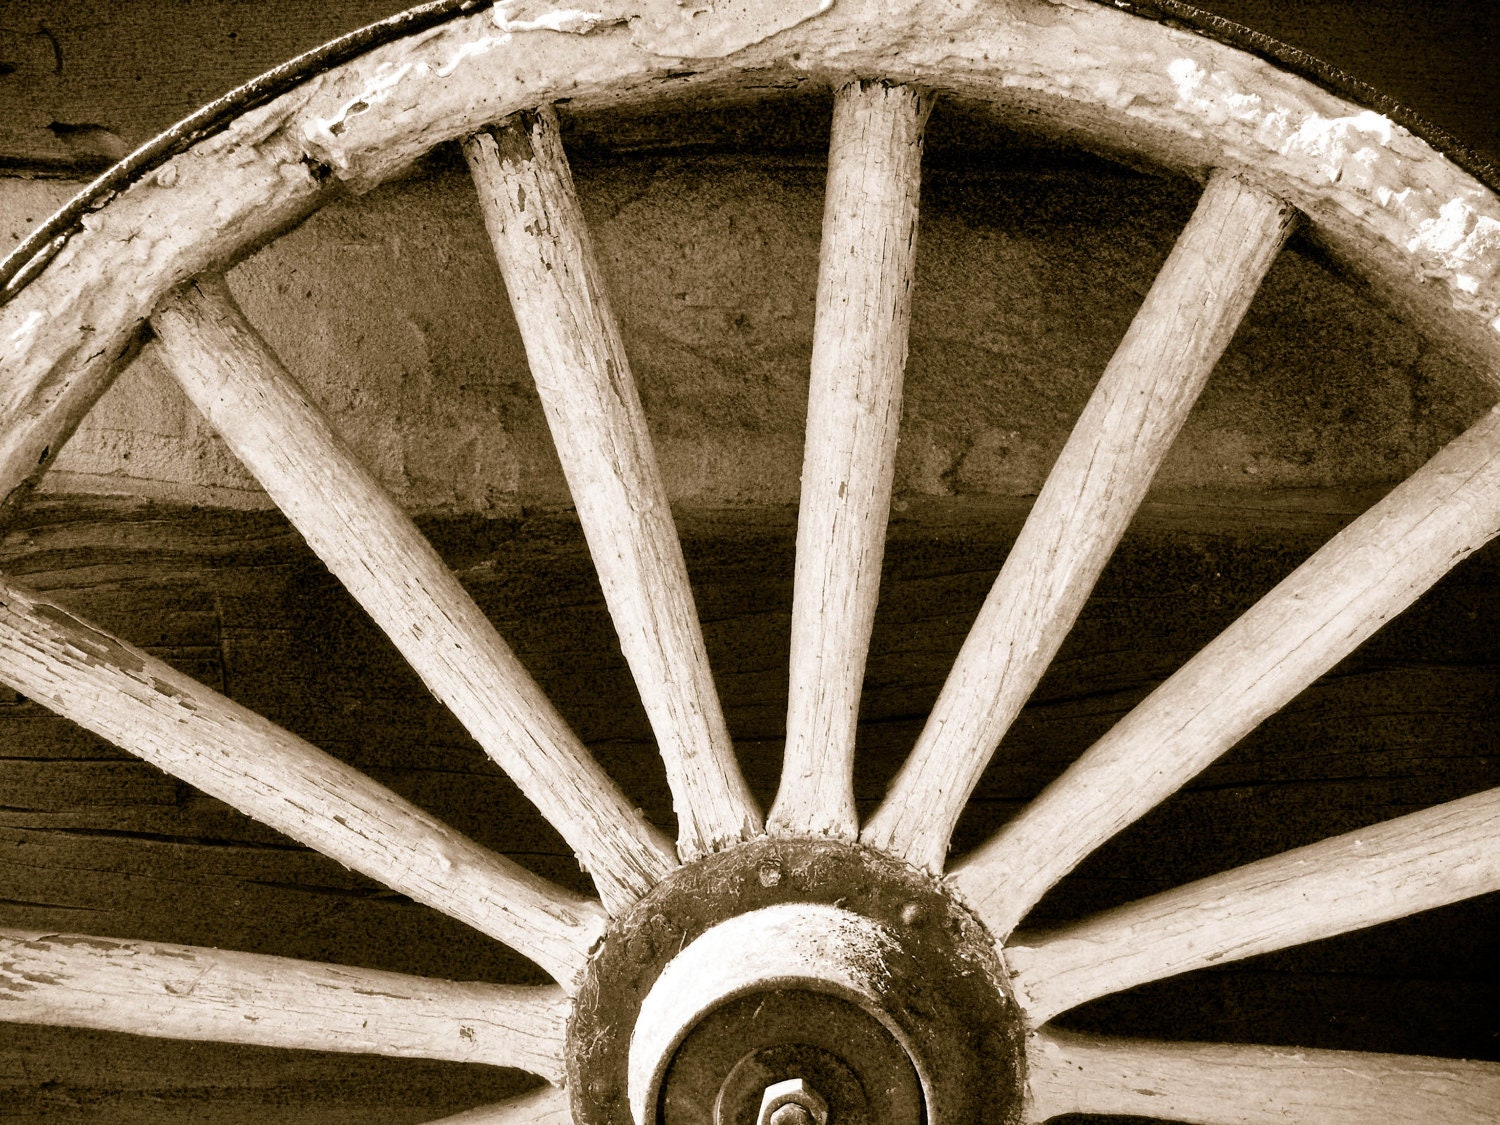 Rustic Wagon Wheel Photograph -  8 x 10 inch - TheHeartWithin